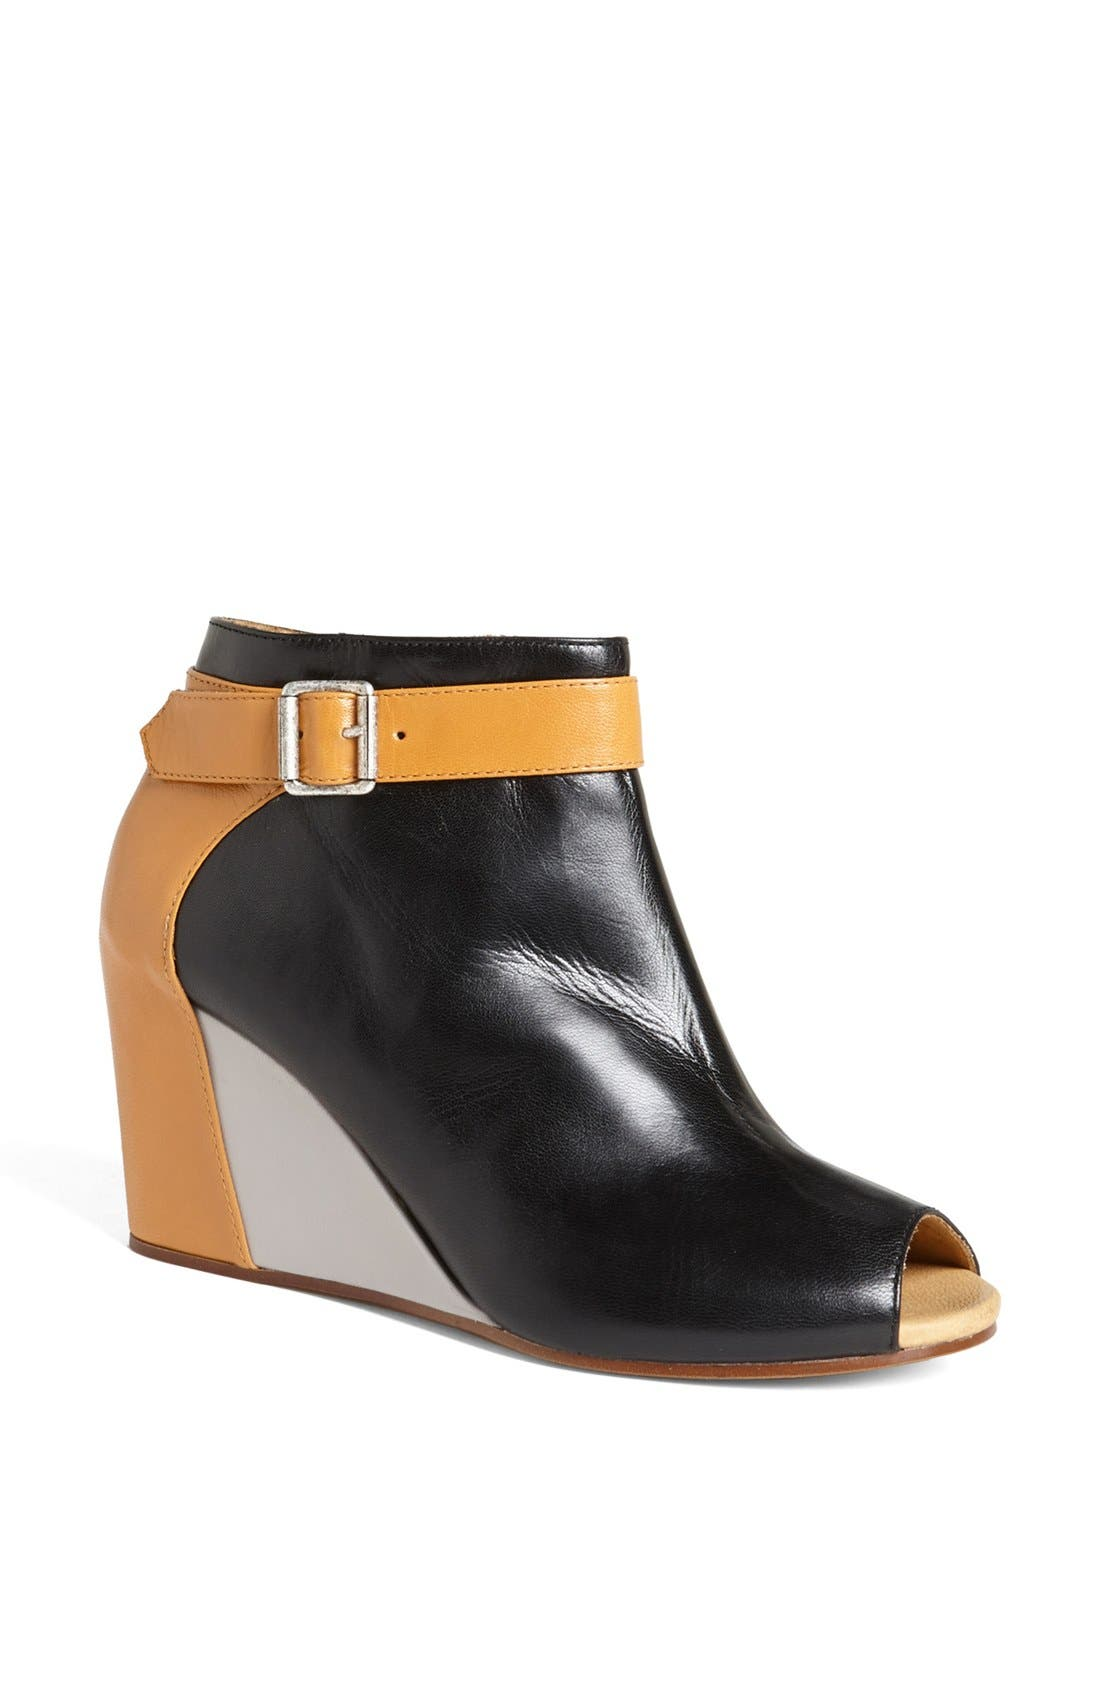 Alternate Image 1 Selected - MM6 Maison Margiela Peep Toe Bootie (Online Only)